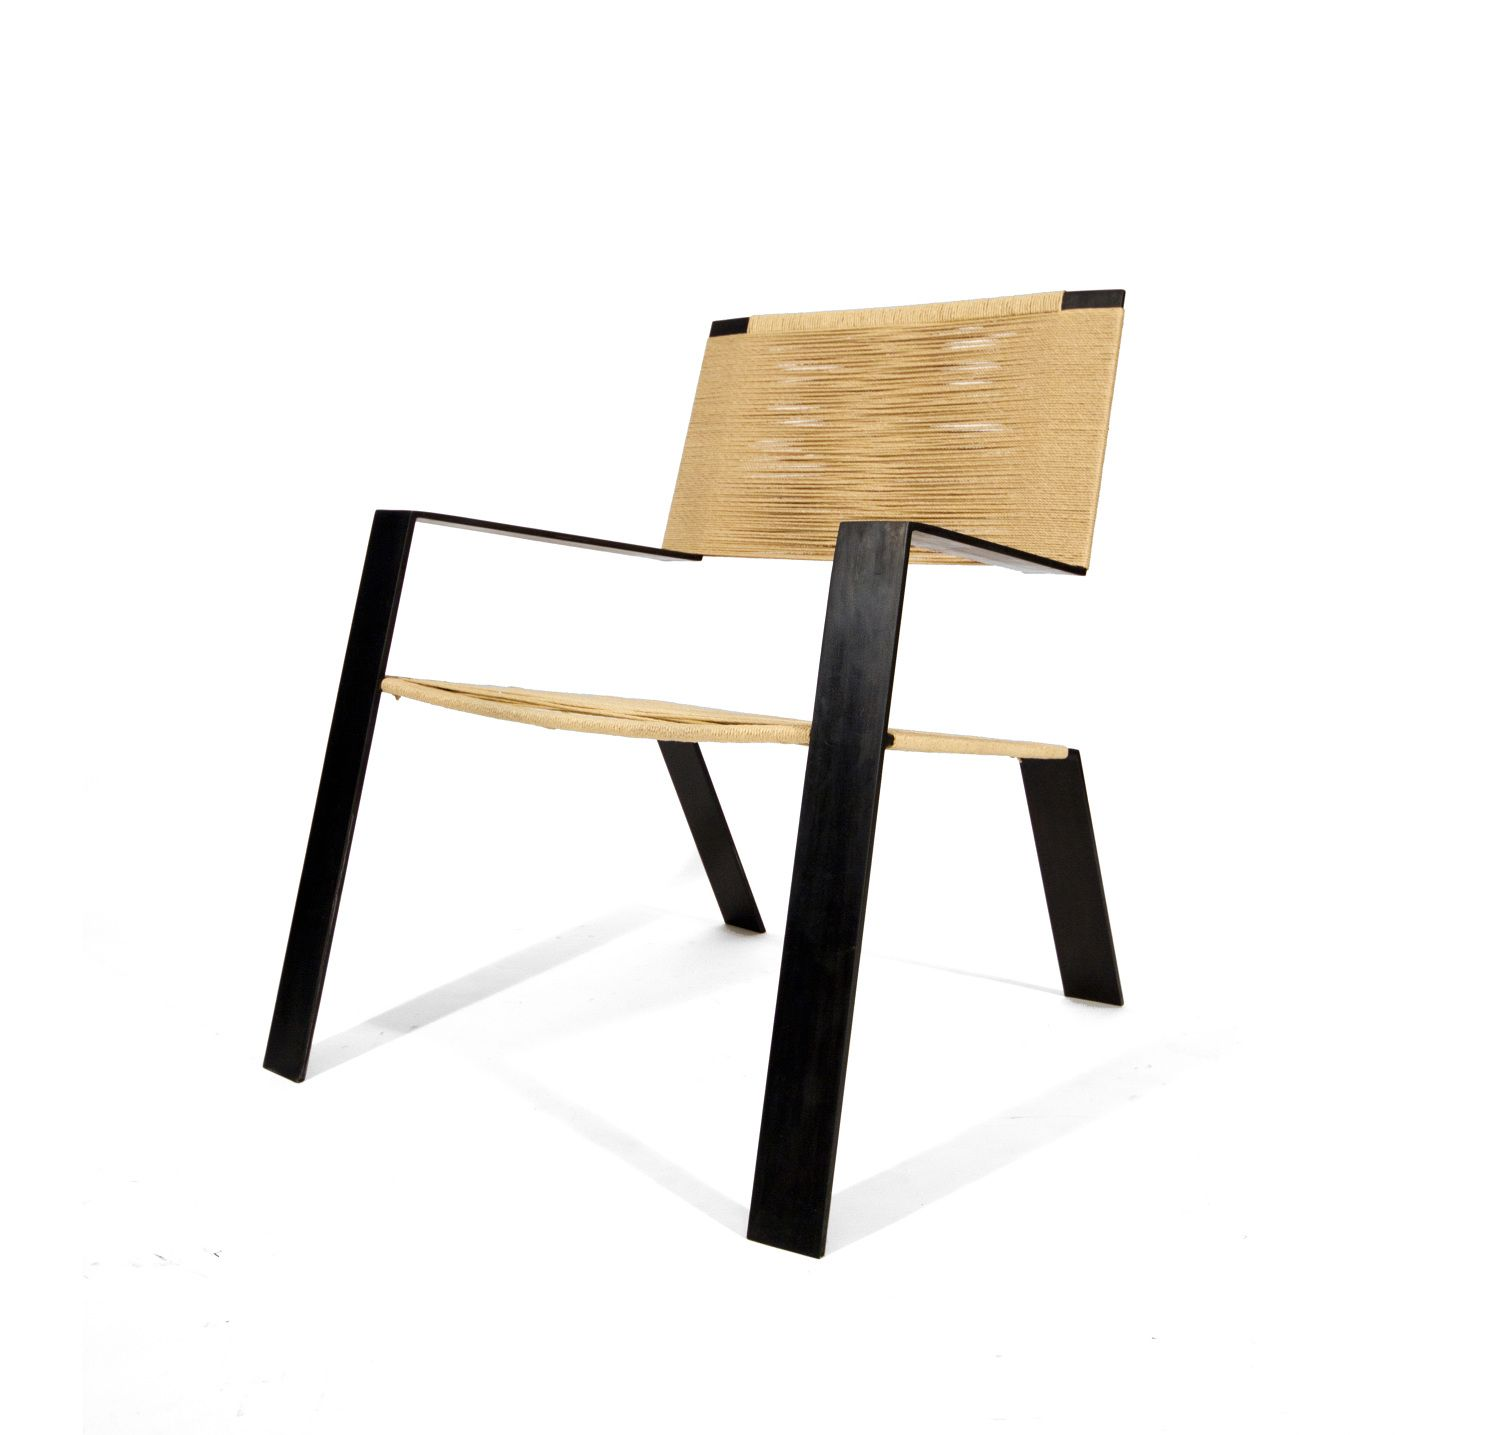 Furniture d u s t didi pinterest multi disciplinary